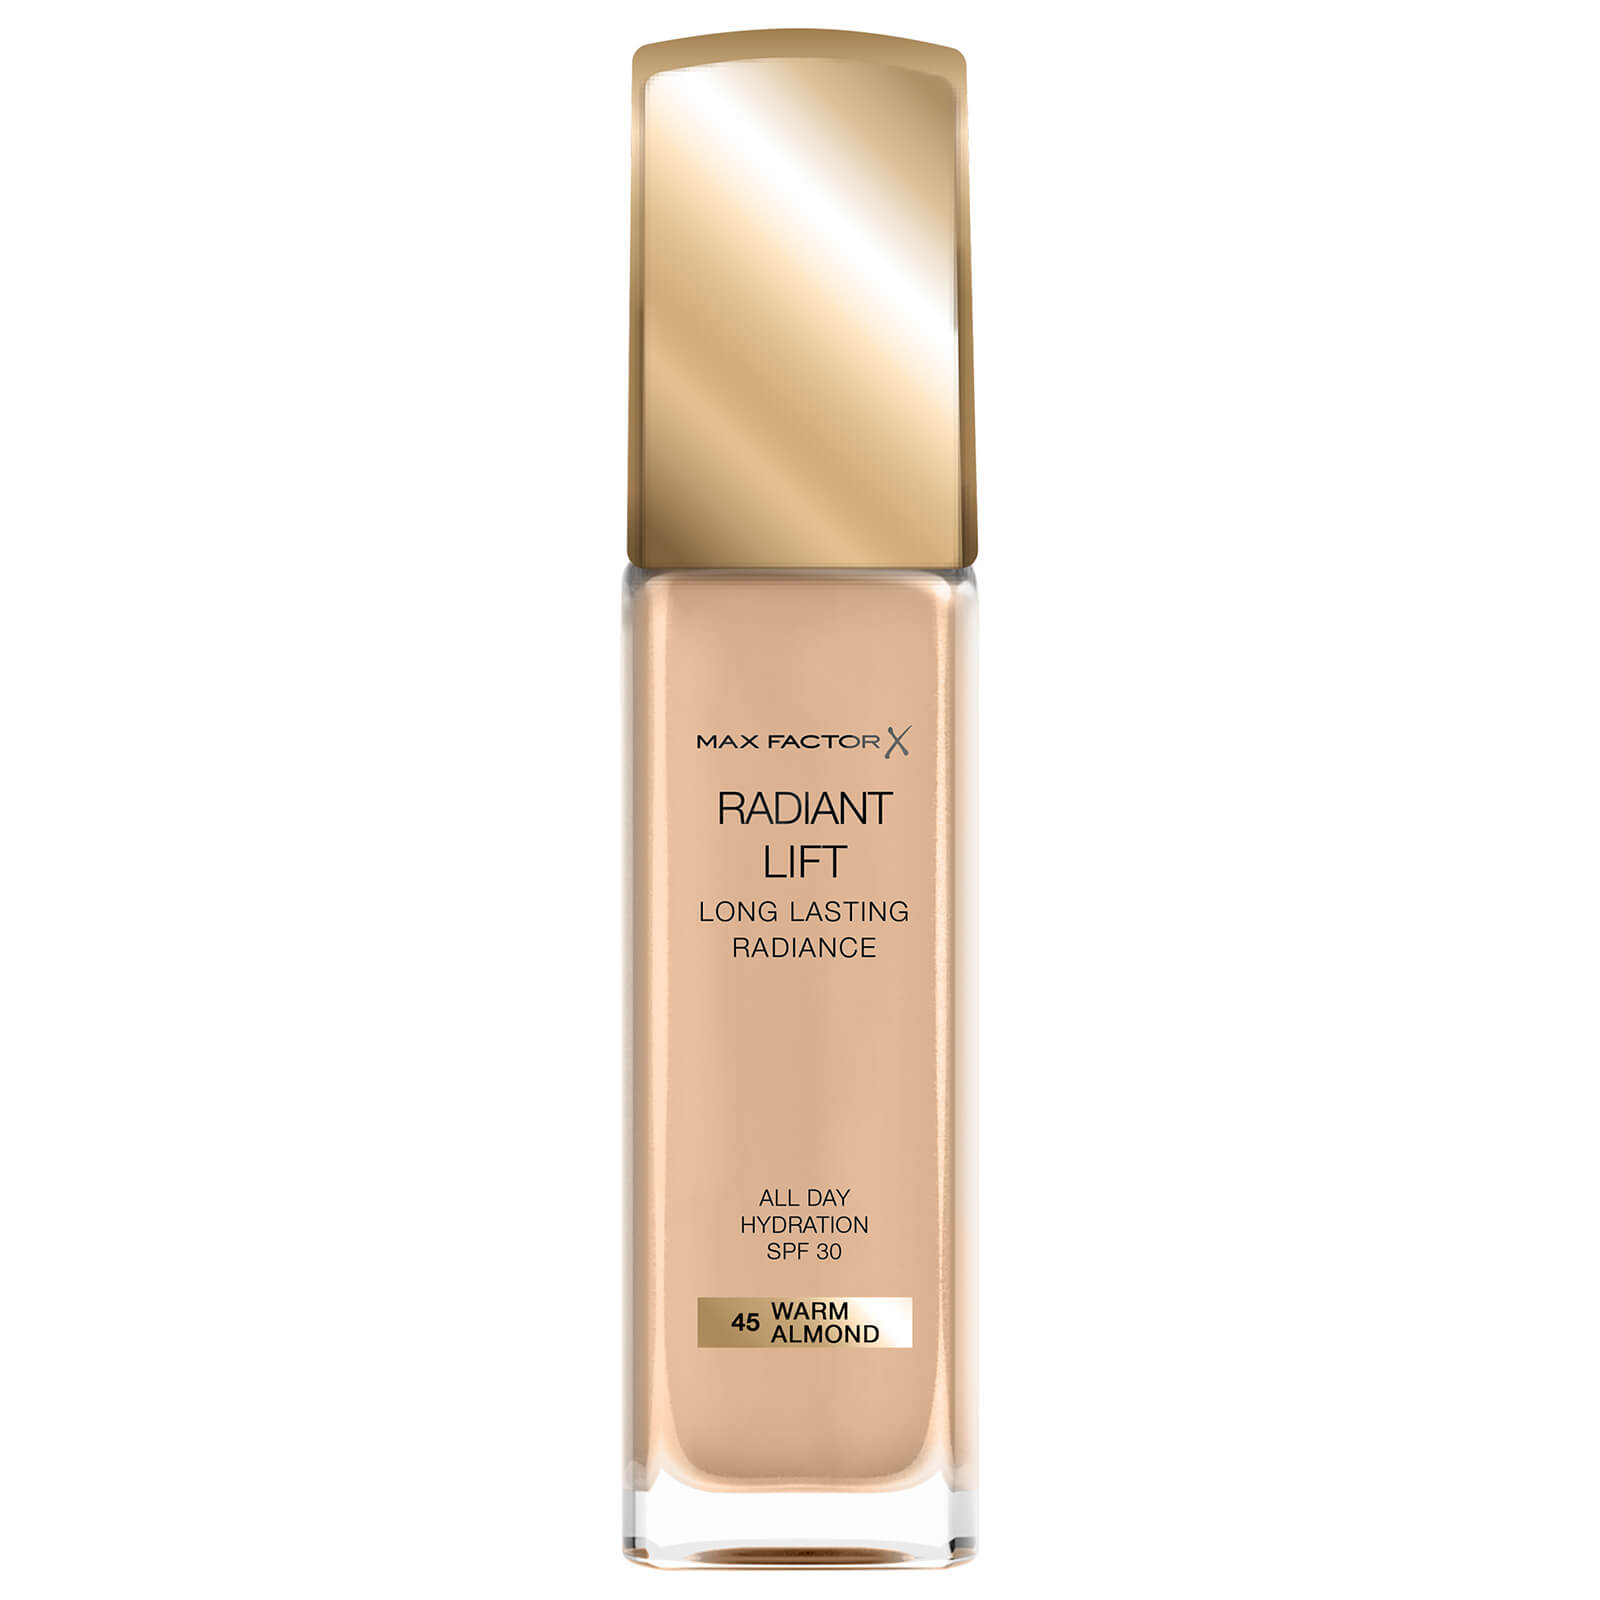 Max Factor Radiant Lift Foundation (Various Shades) - Warm Almond